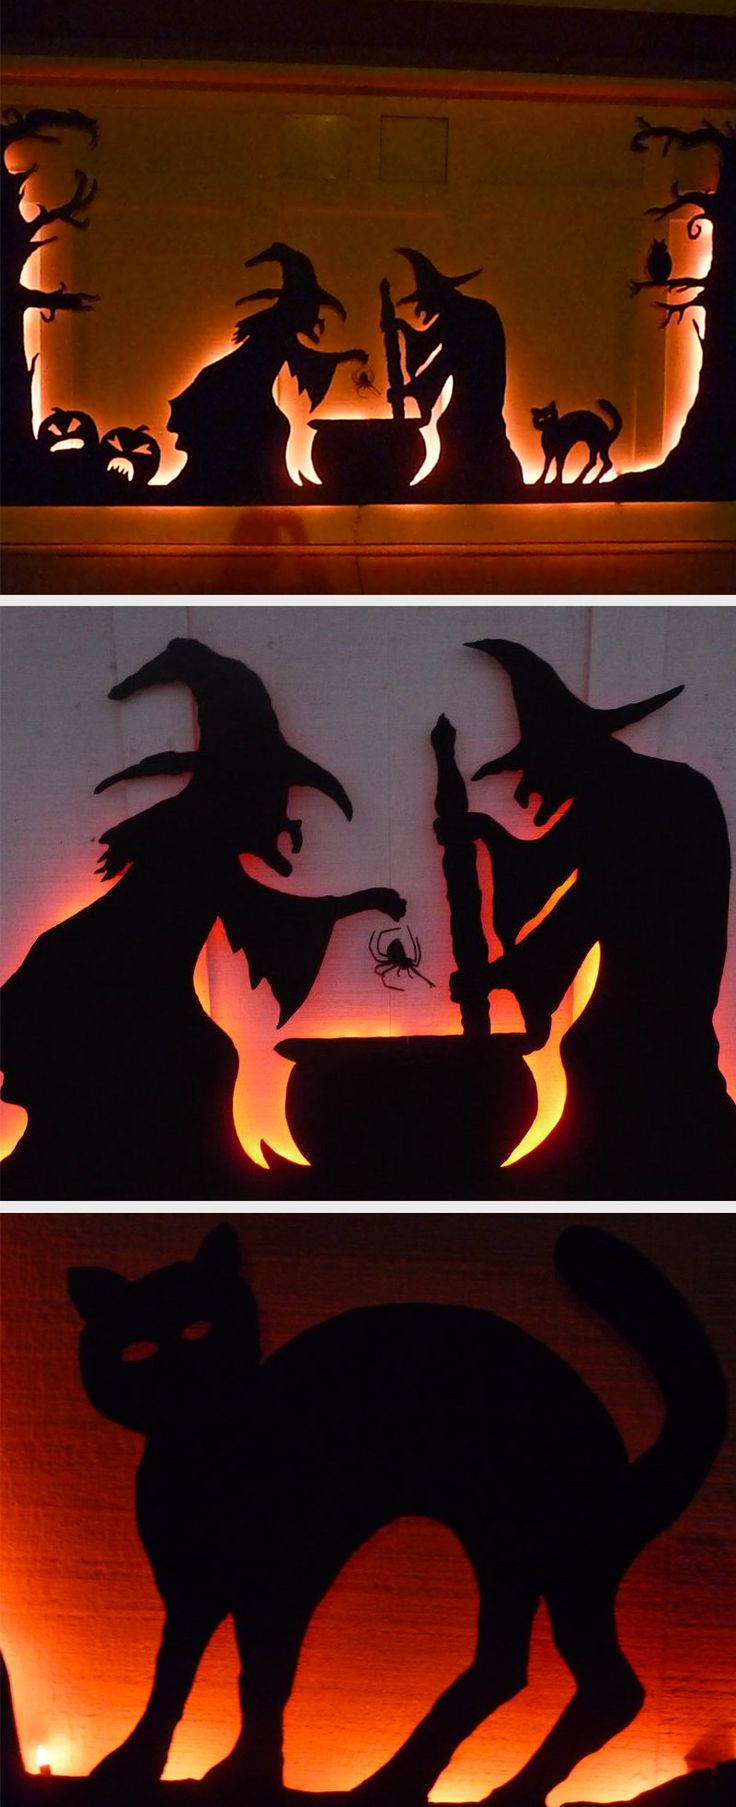 Halloween DIY Decorating Idea: A spooky garage door silhouette.